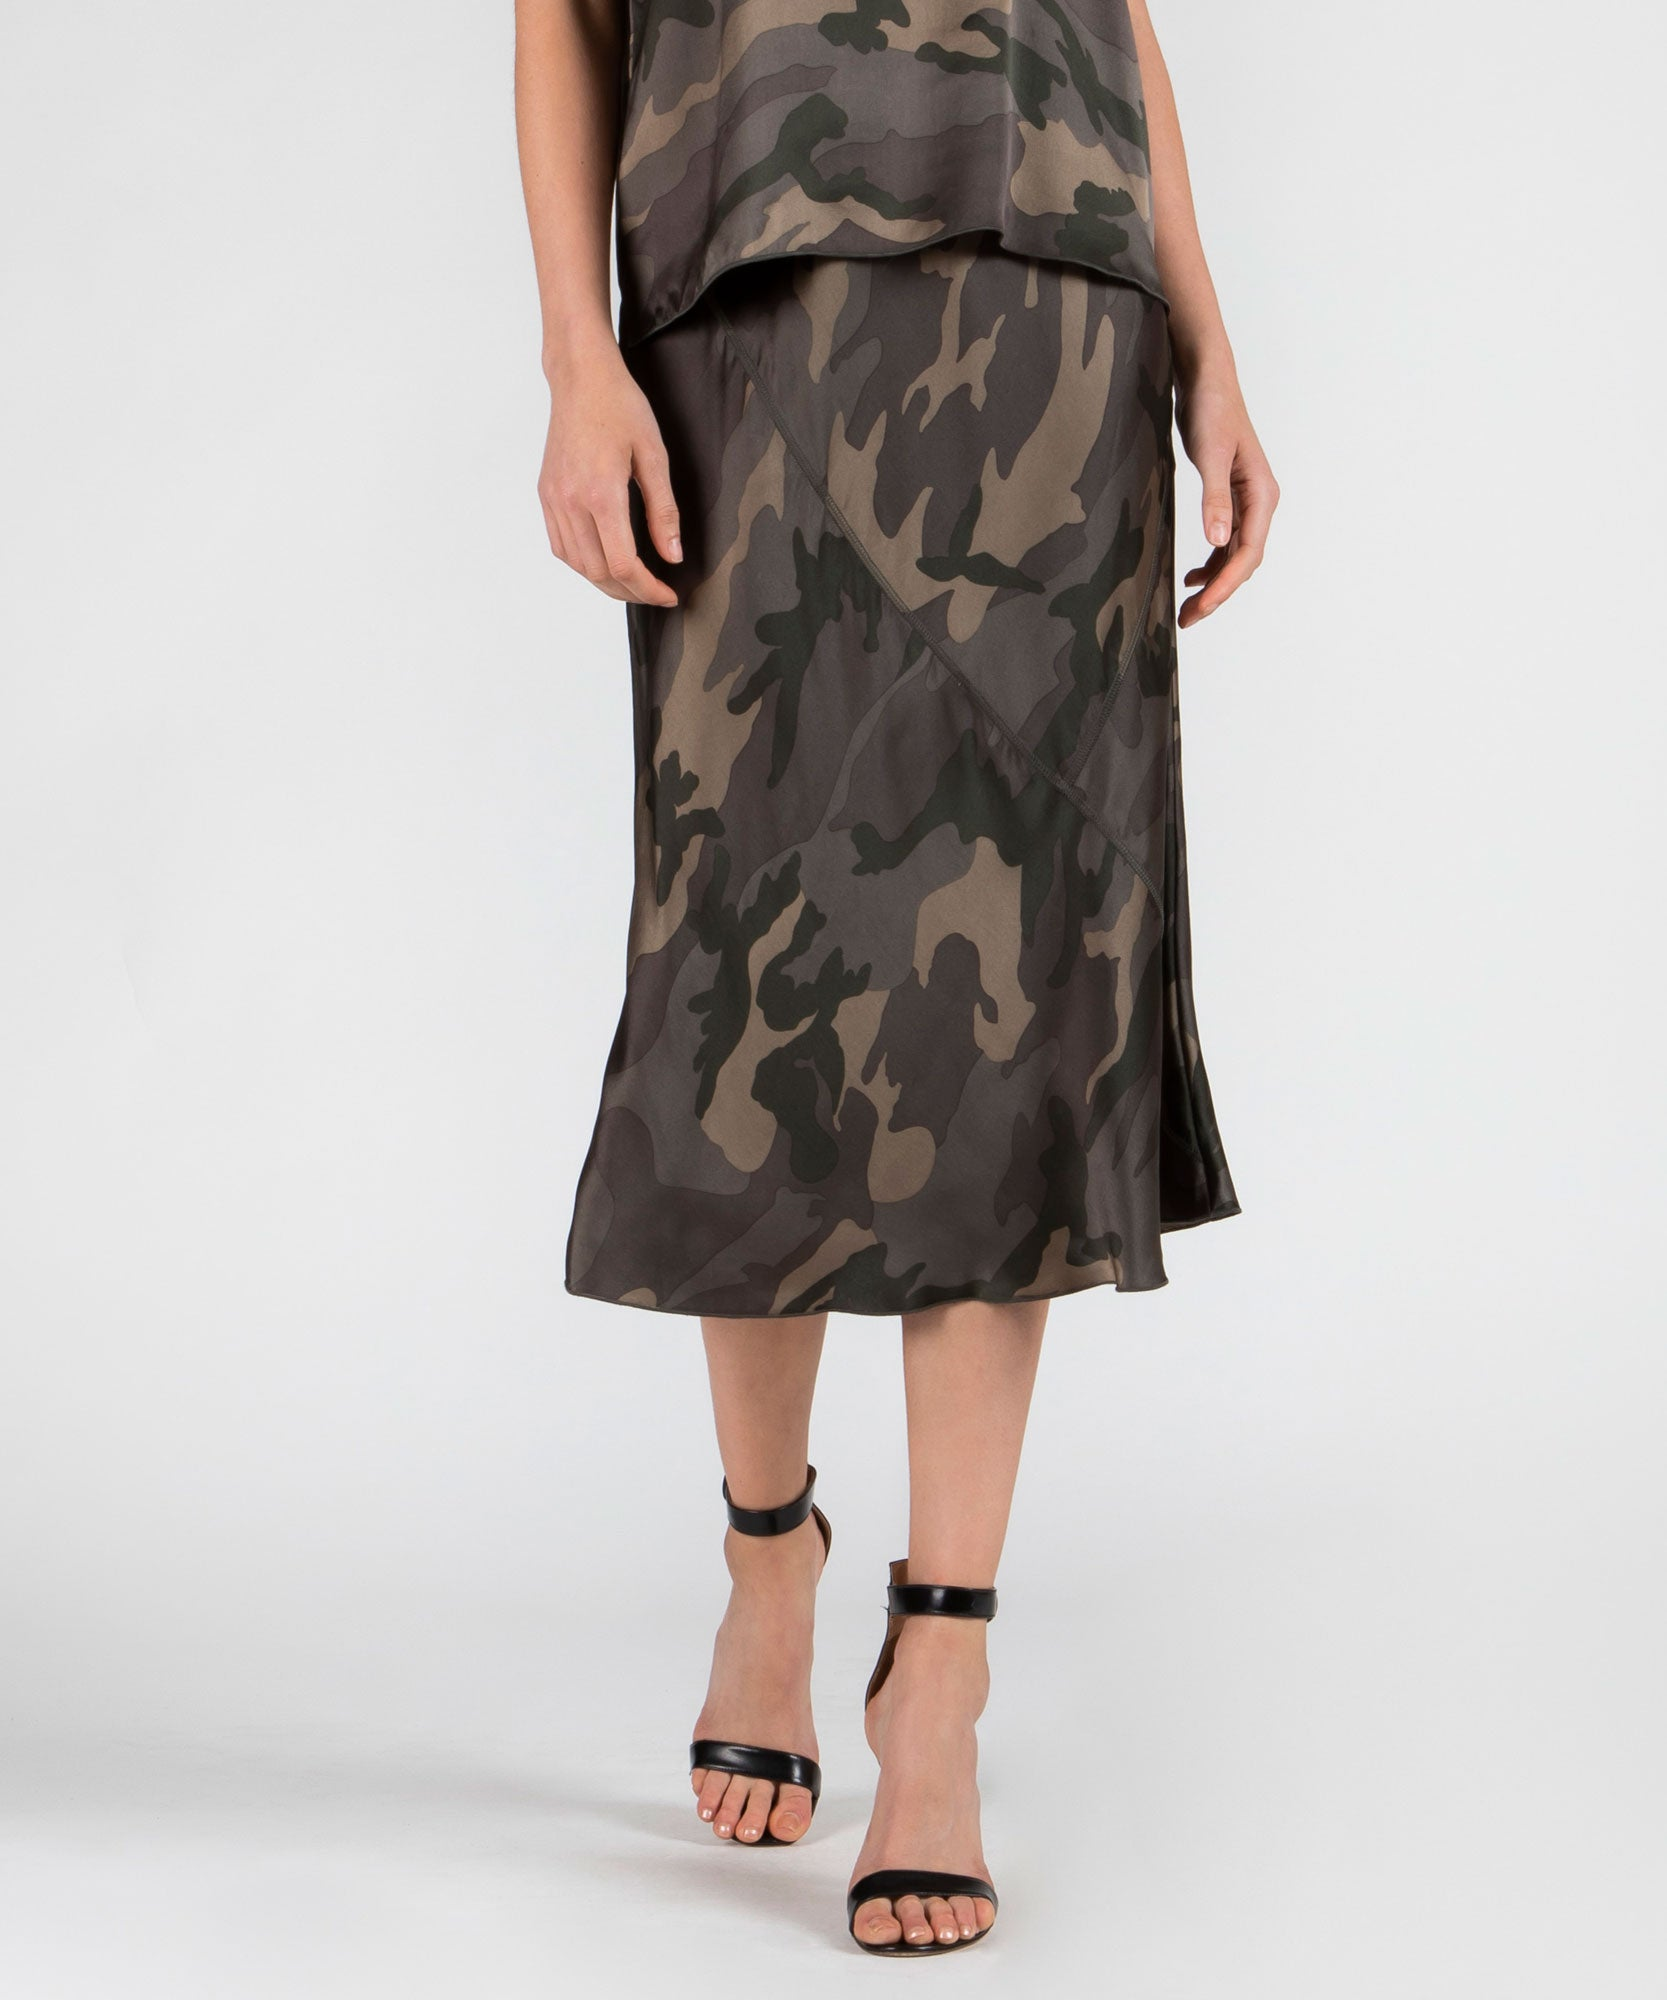 Jungle Camo Silk Skirt - Women's Skirt by ATM Anthony Thomas Melillo